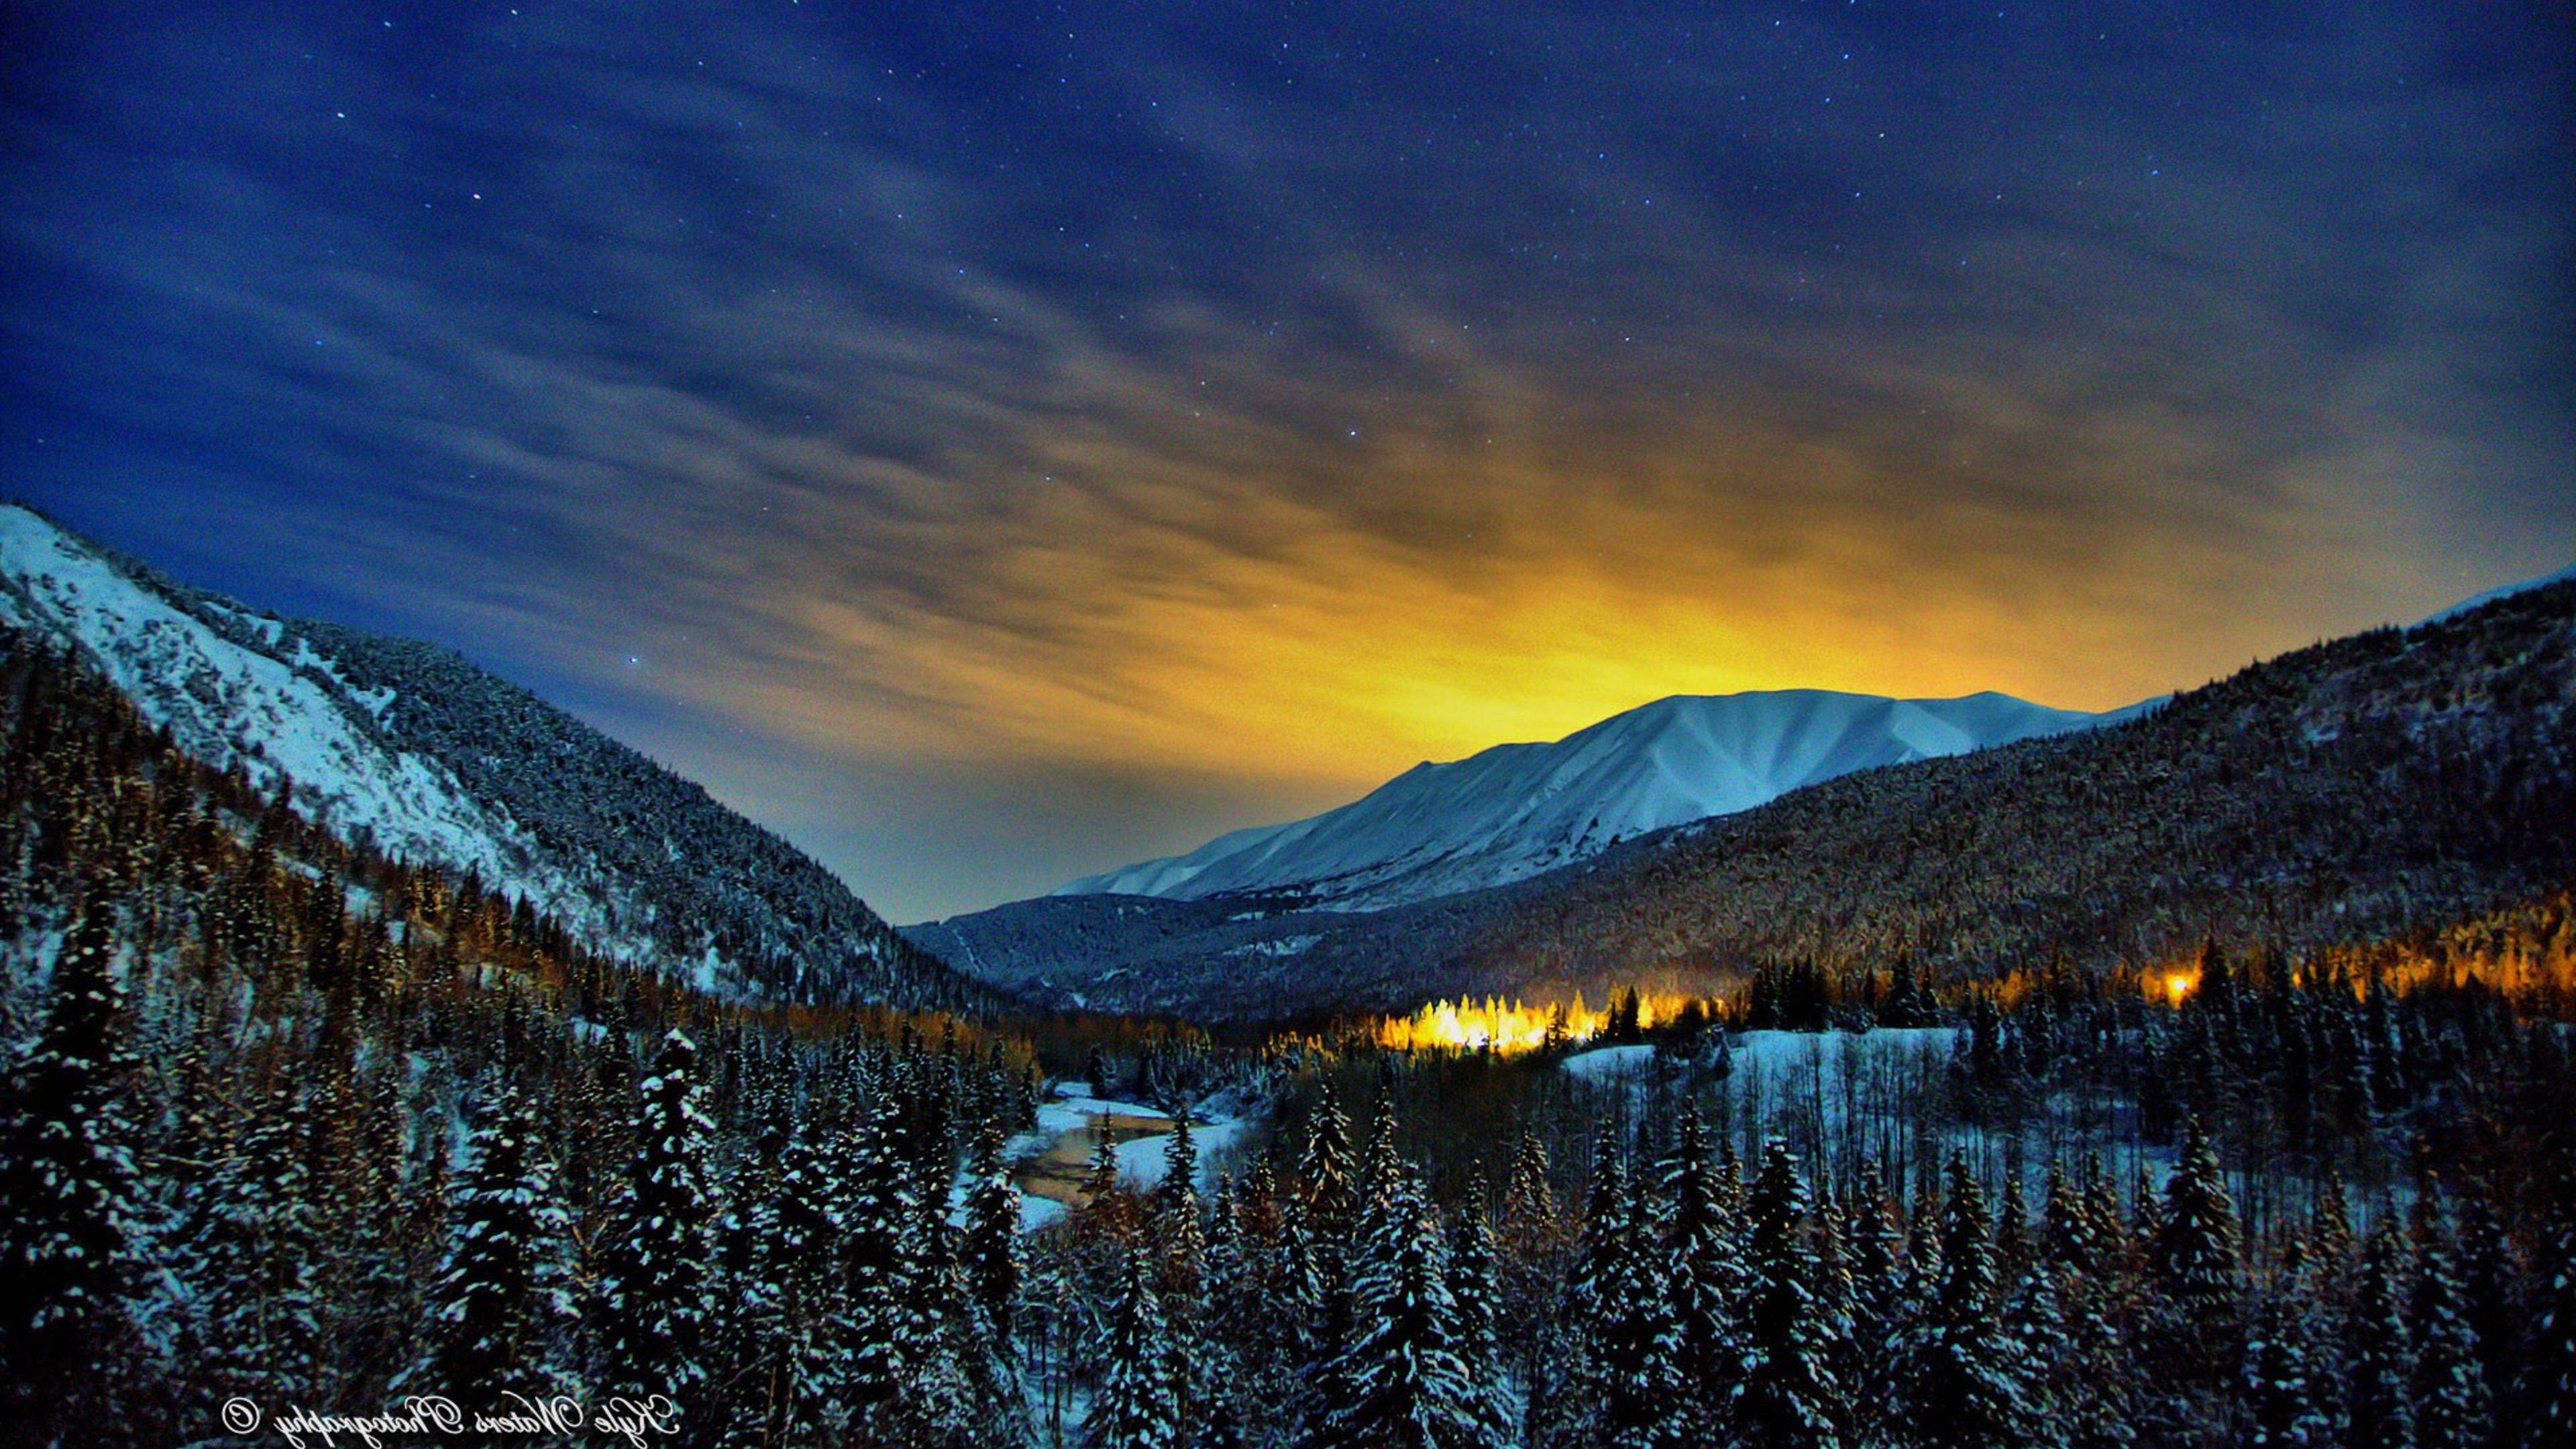 alaska winter nights hd nature 4k wallpapers images